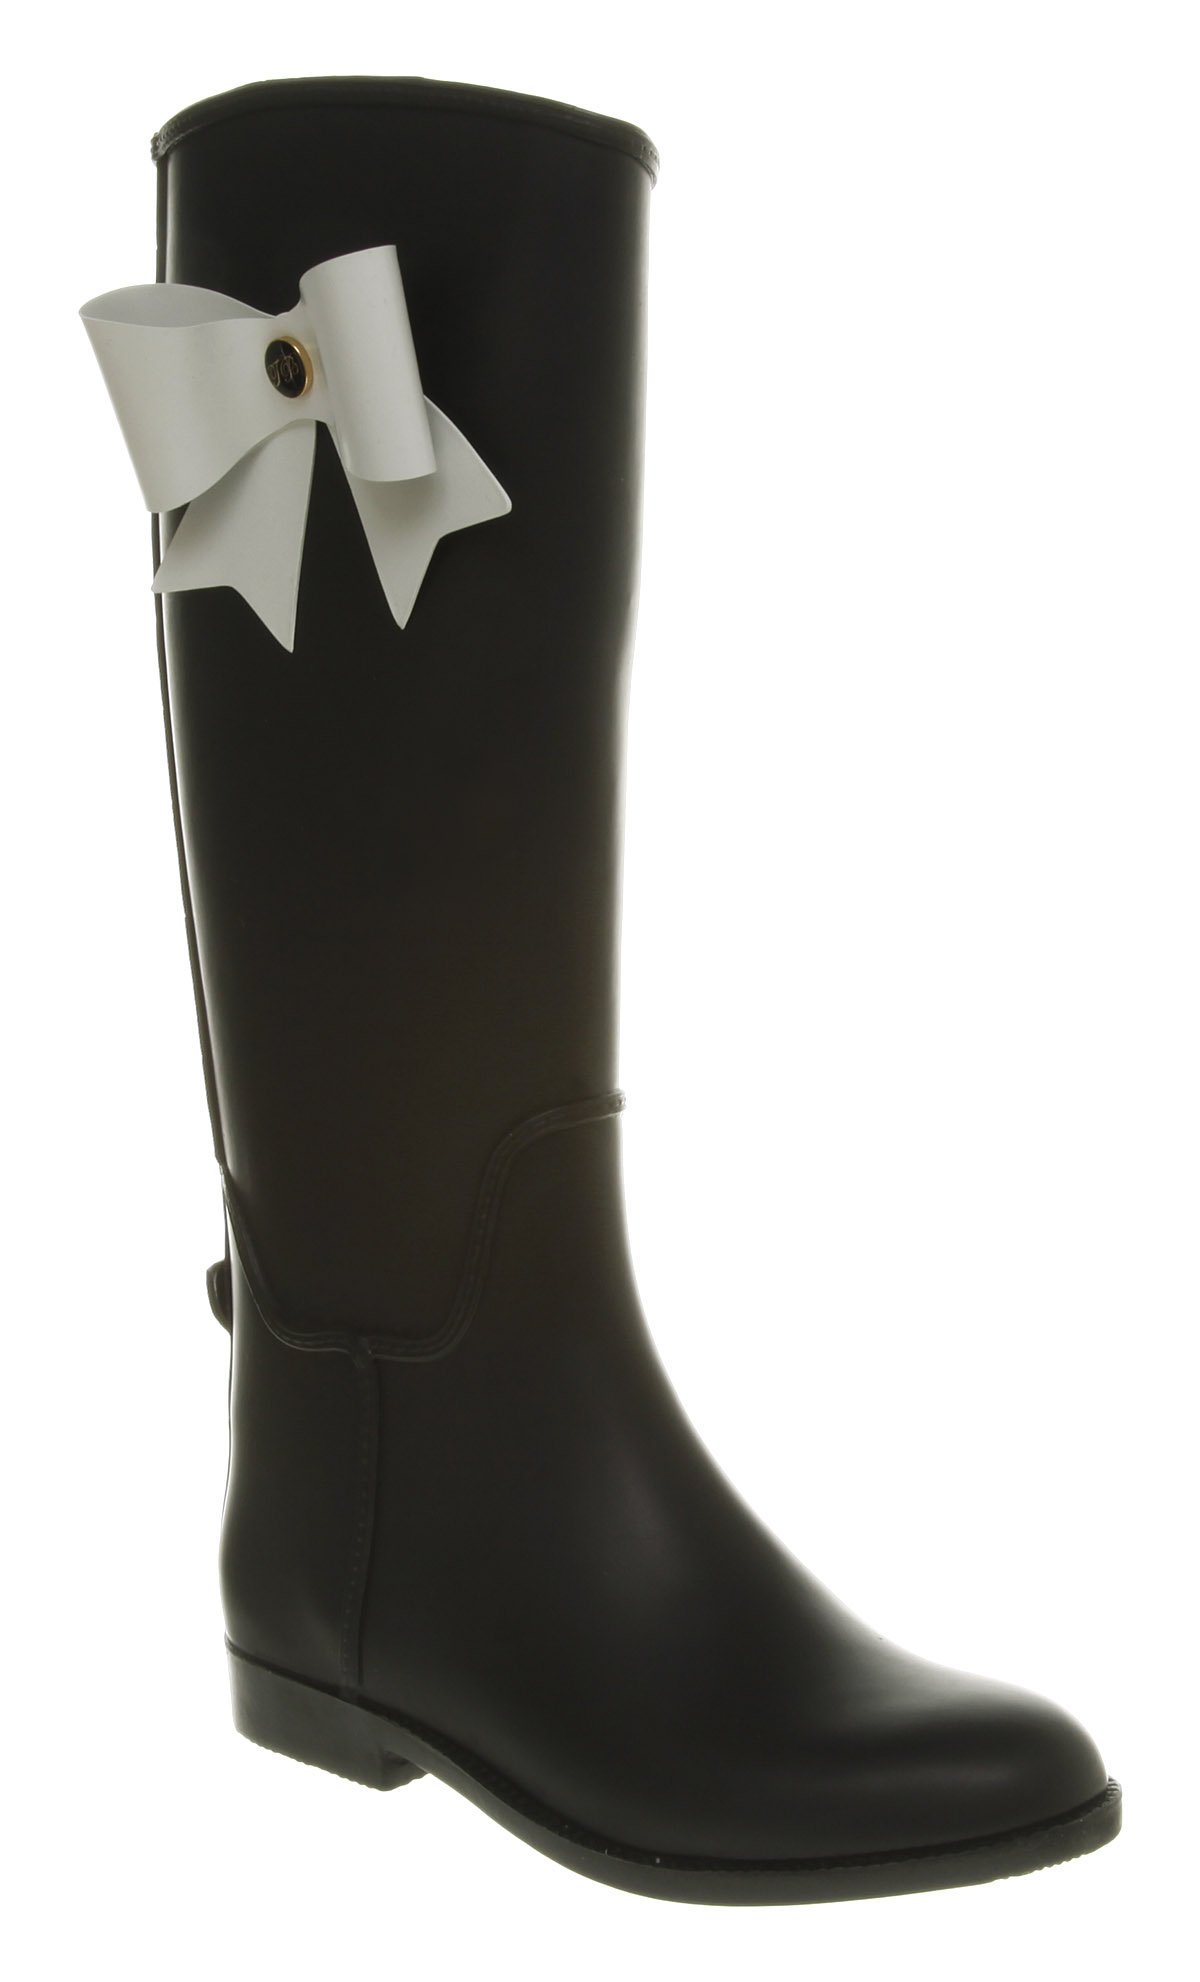 3c21a1e09b4a11 Ted Baker Rain Boots - Best Picture Of Boot Imageco.Org